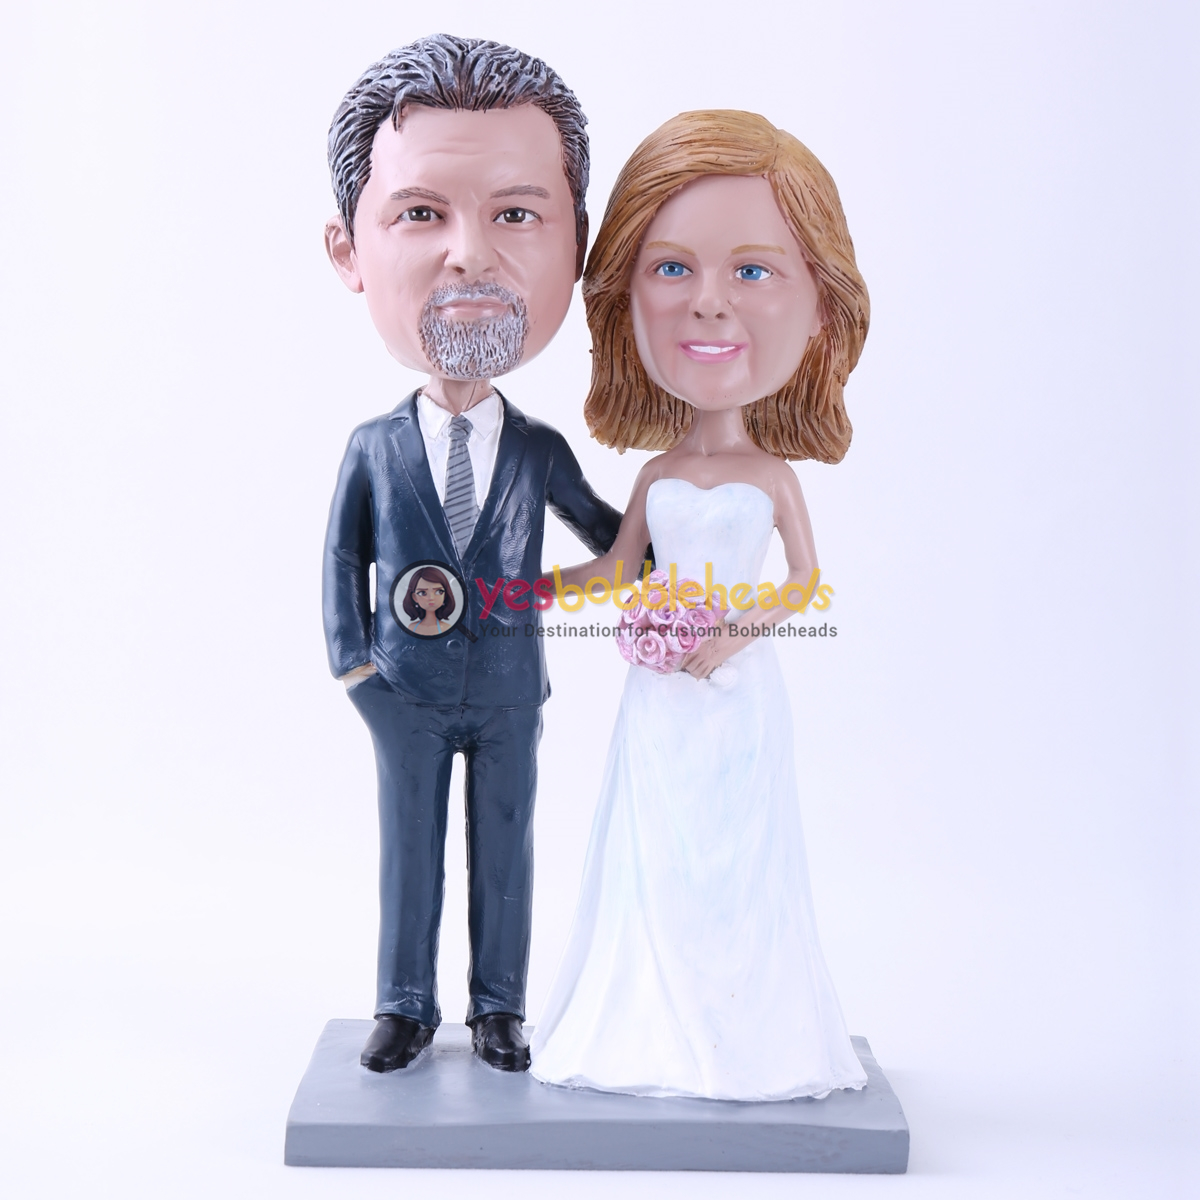 Picture of Custom Bobblehead Doll: Bride & Groom Arm in Arm